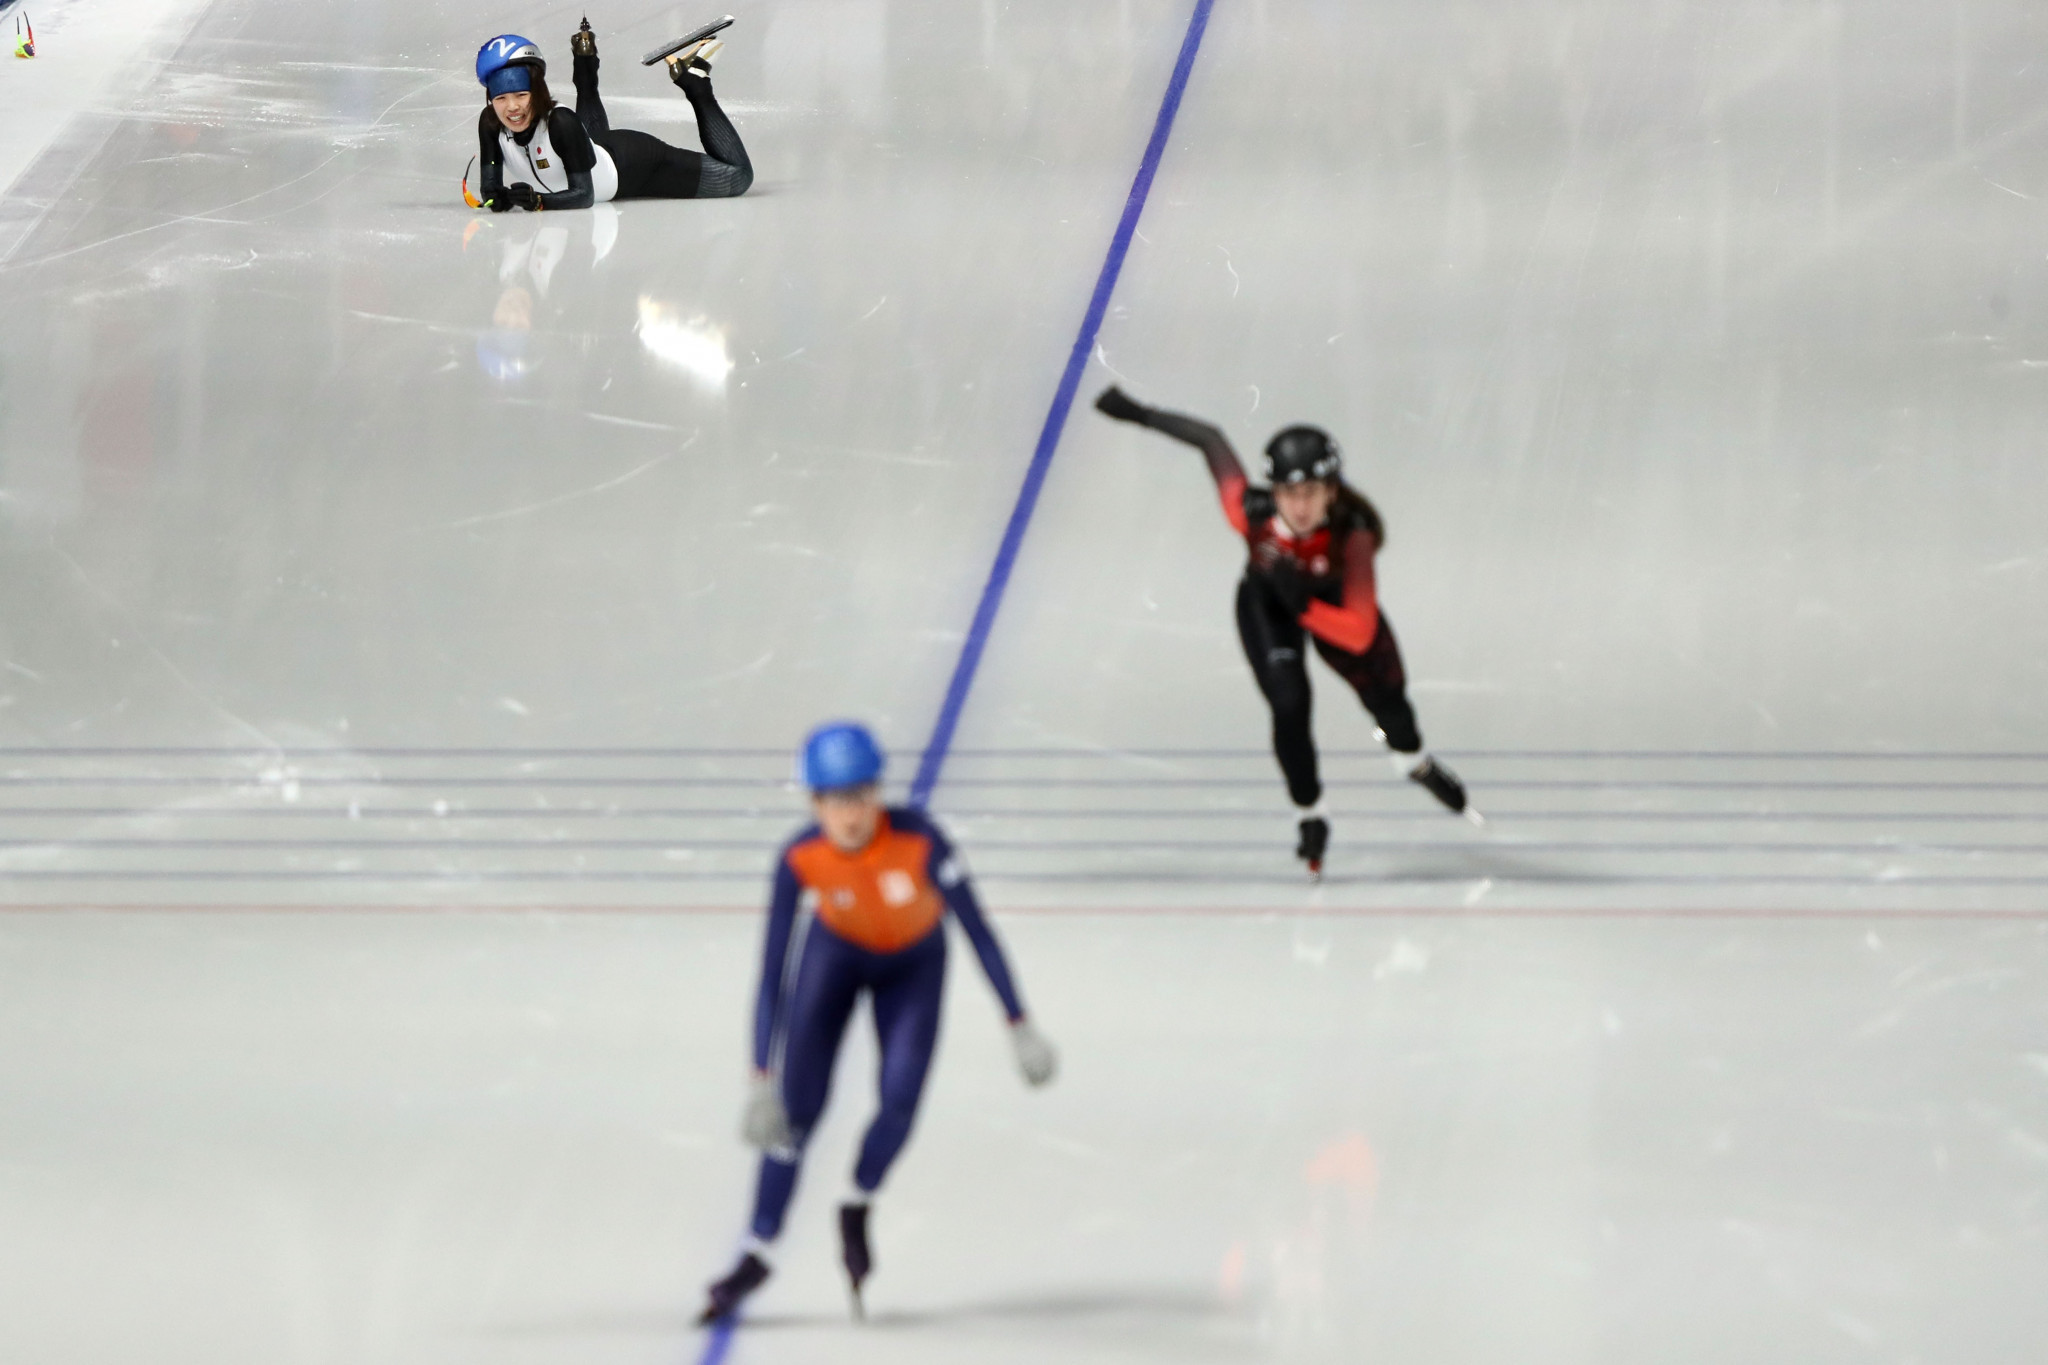 The Netherlands are traditionally the strongest nation in speed skating ©Getty Images